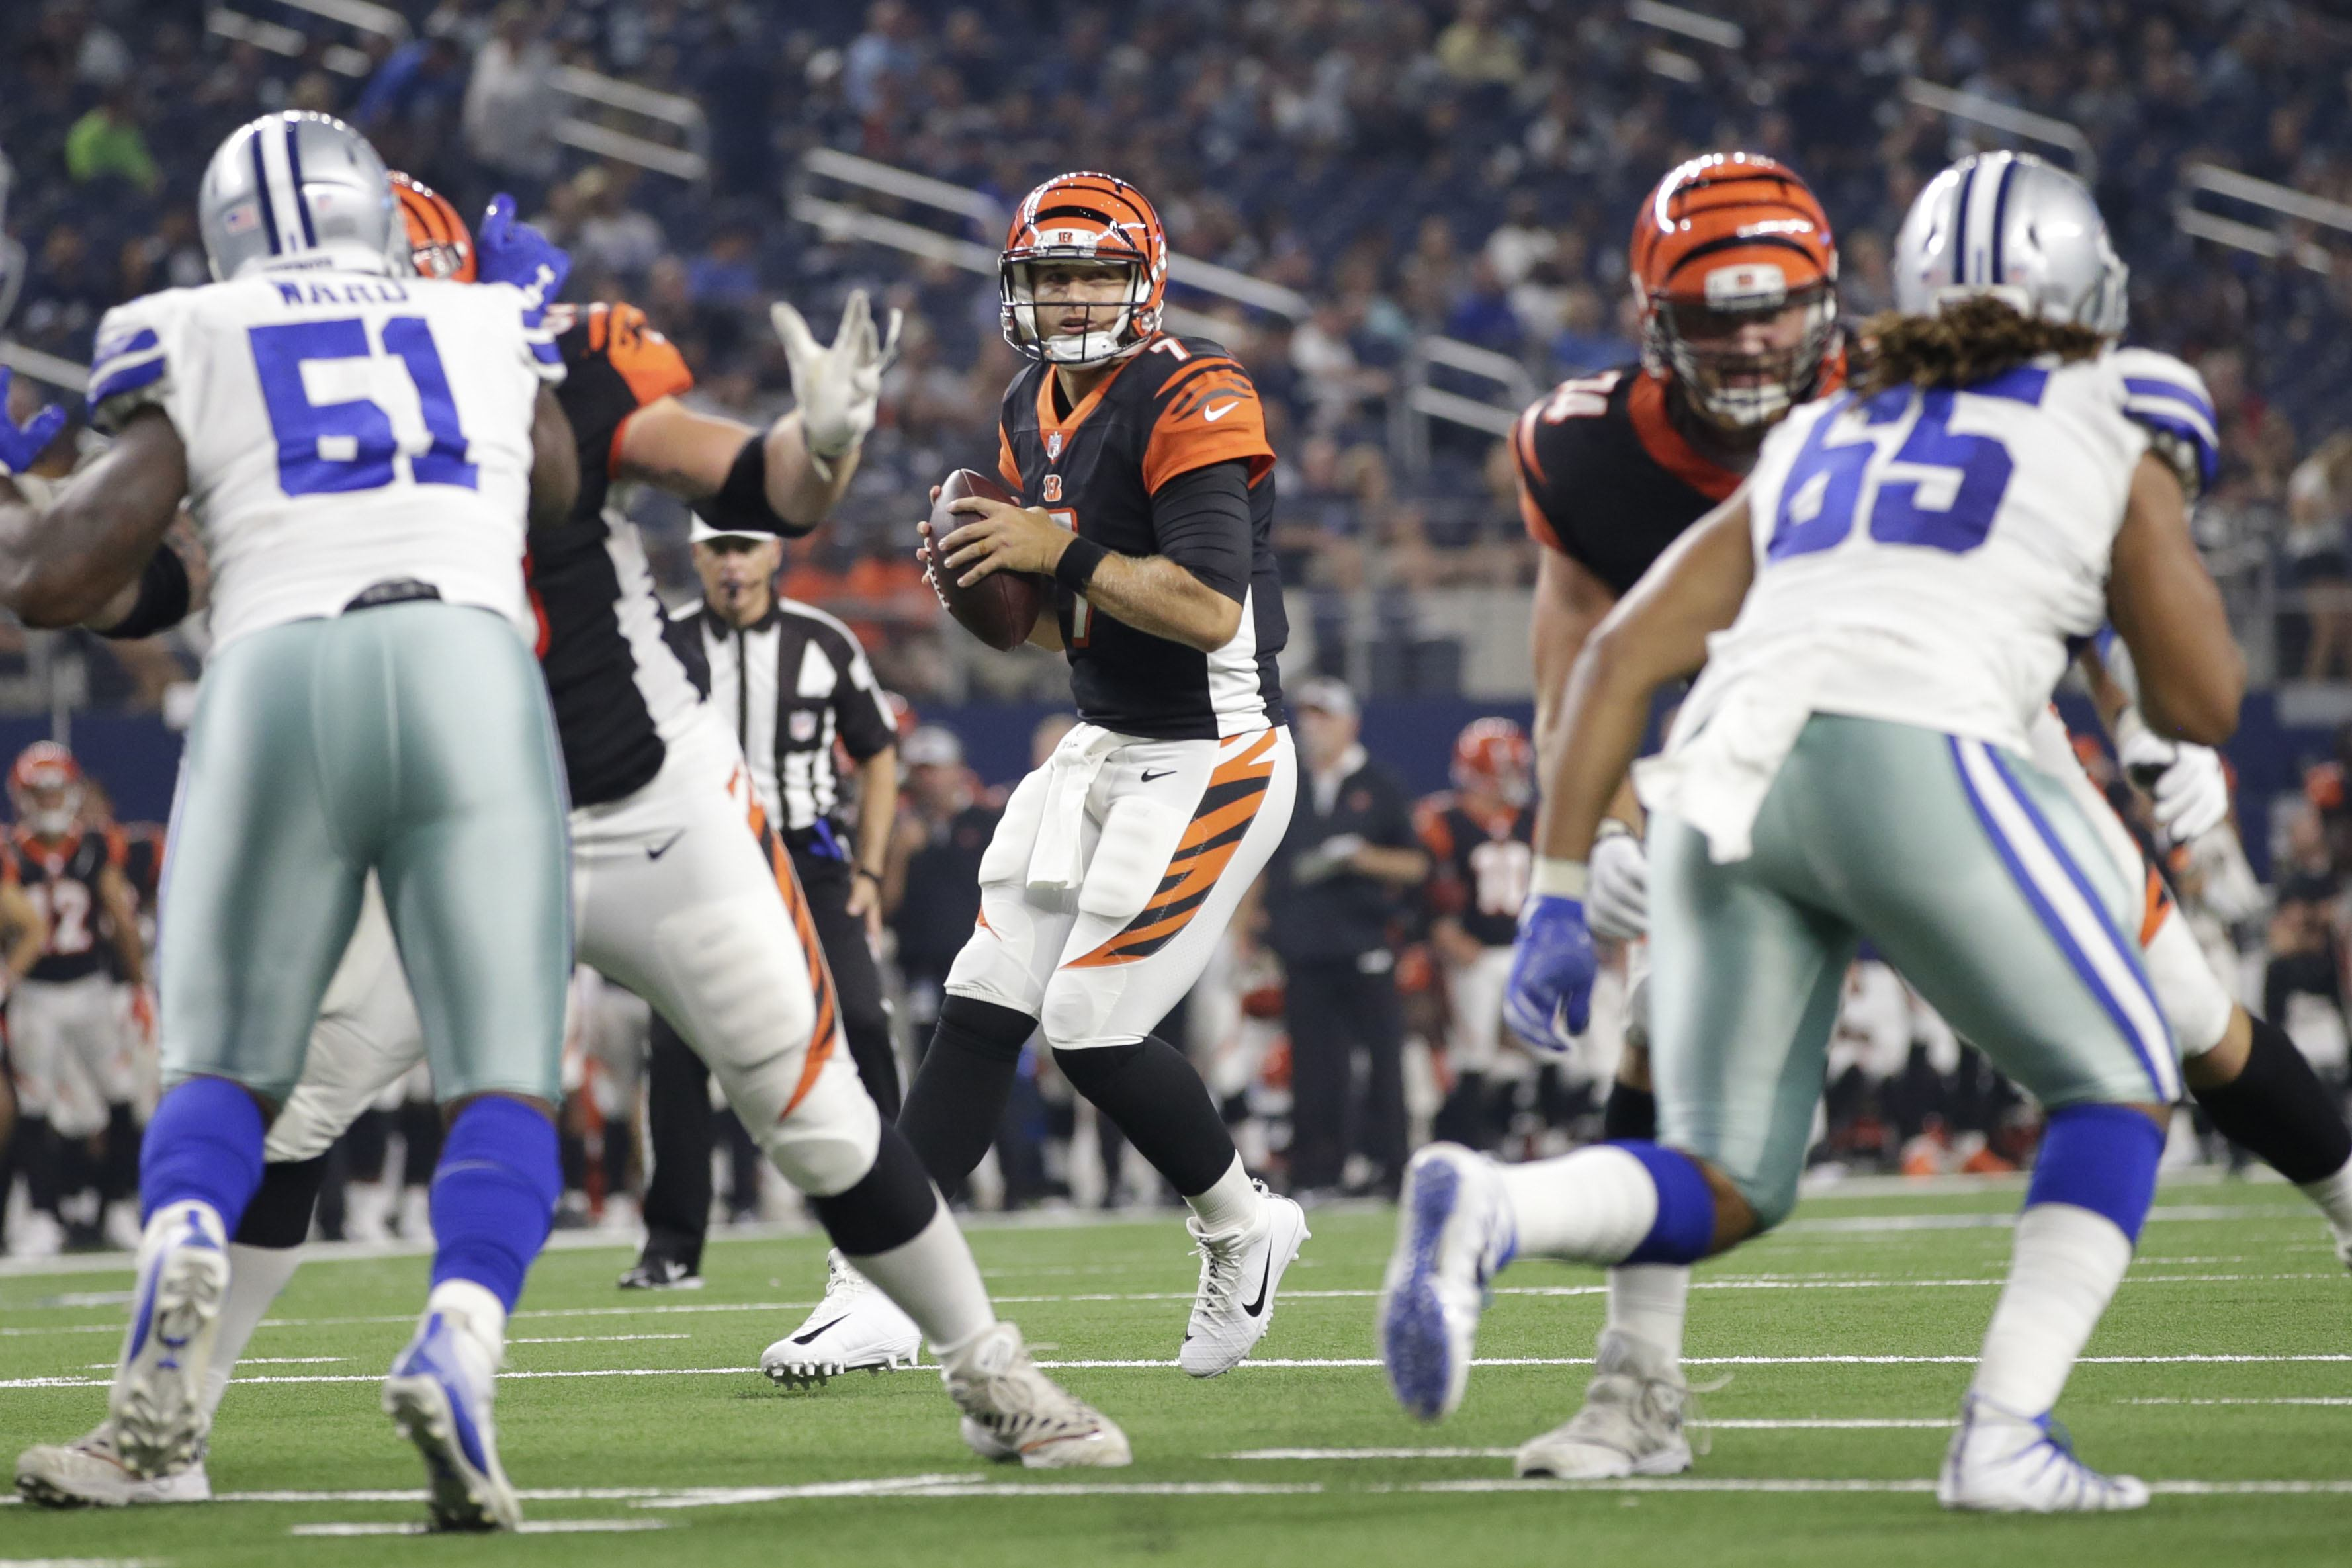 Sean-martin_dallas-cowboys_seans-scout-starting-front-7-sets-tone-early-cowboys-depth-falters-in-loss-to-bengals